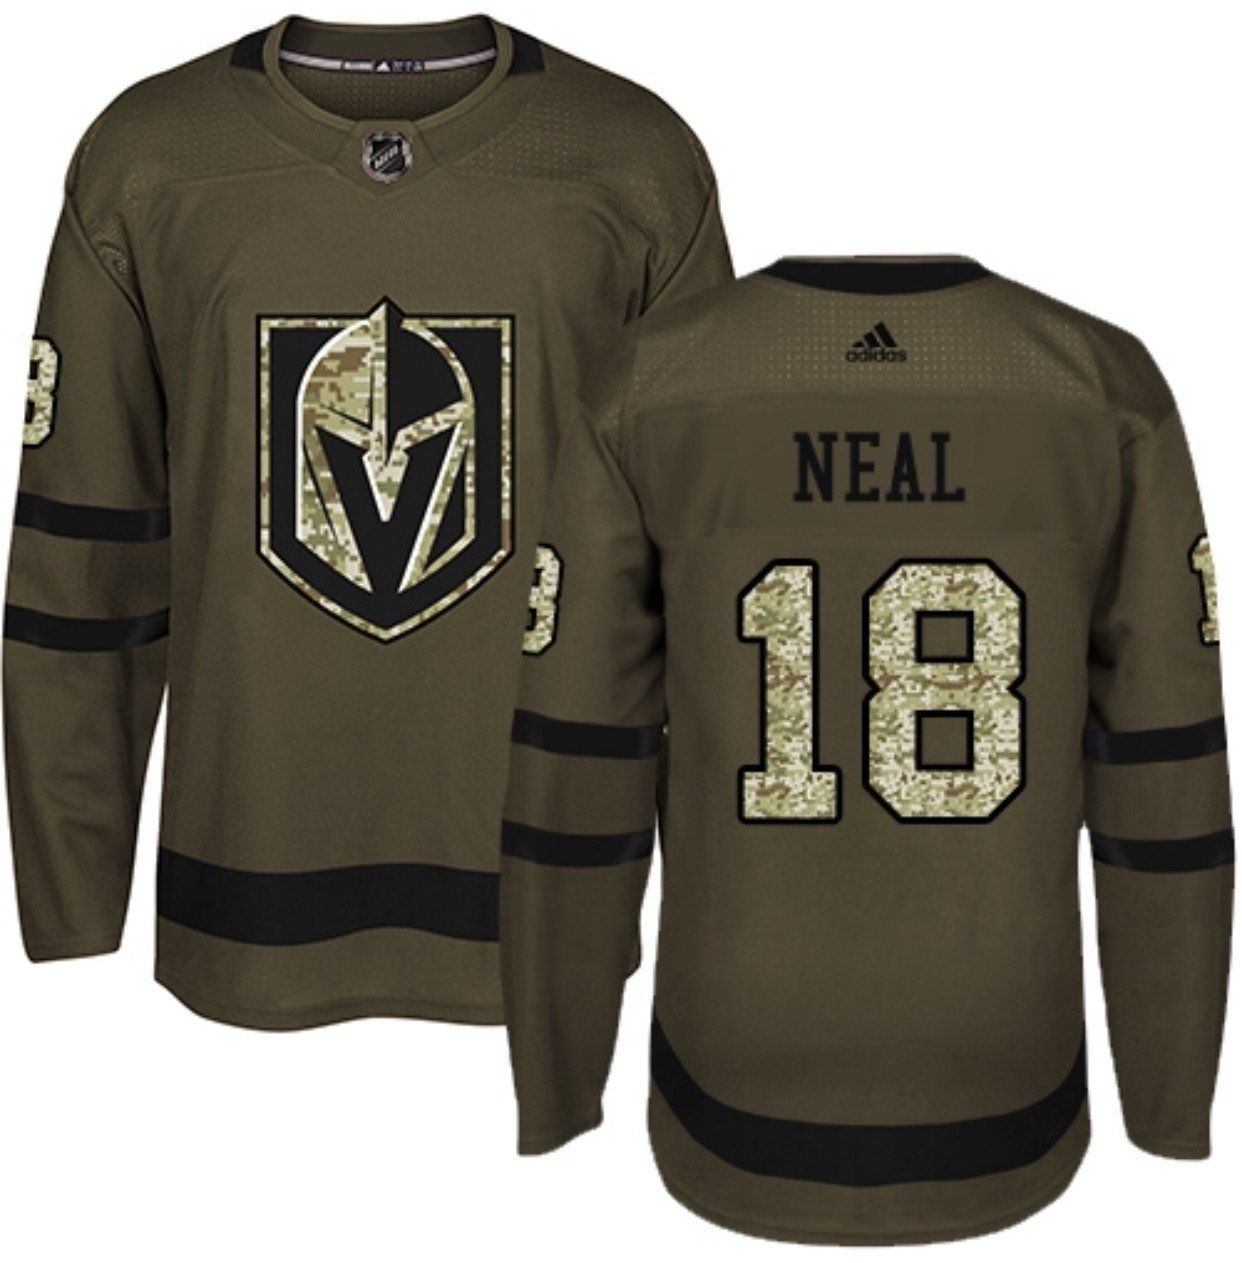 Vegas Golden Knights Premier Adidas NHL Home & Road